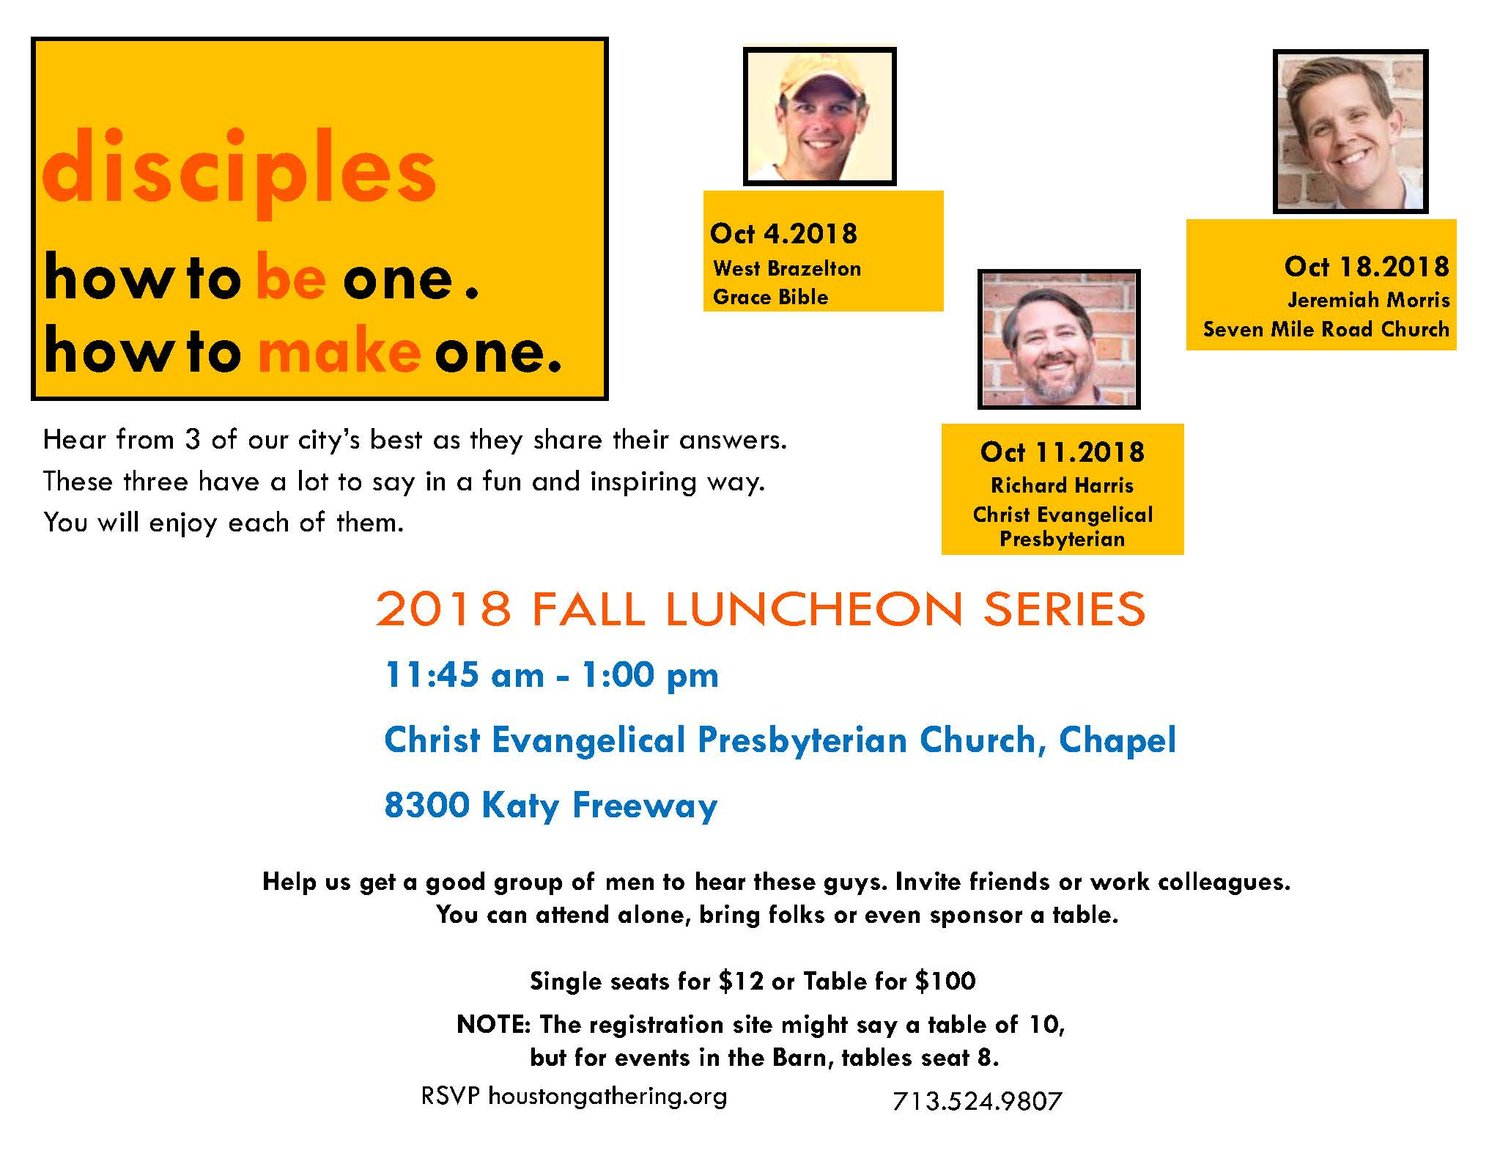 2018 Fall Luncheon Series